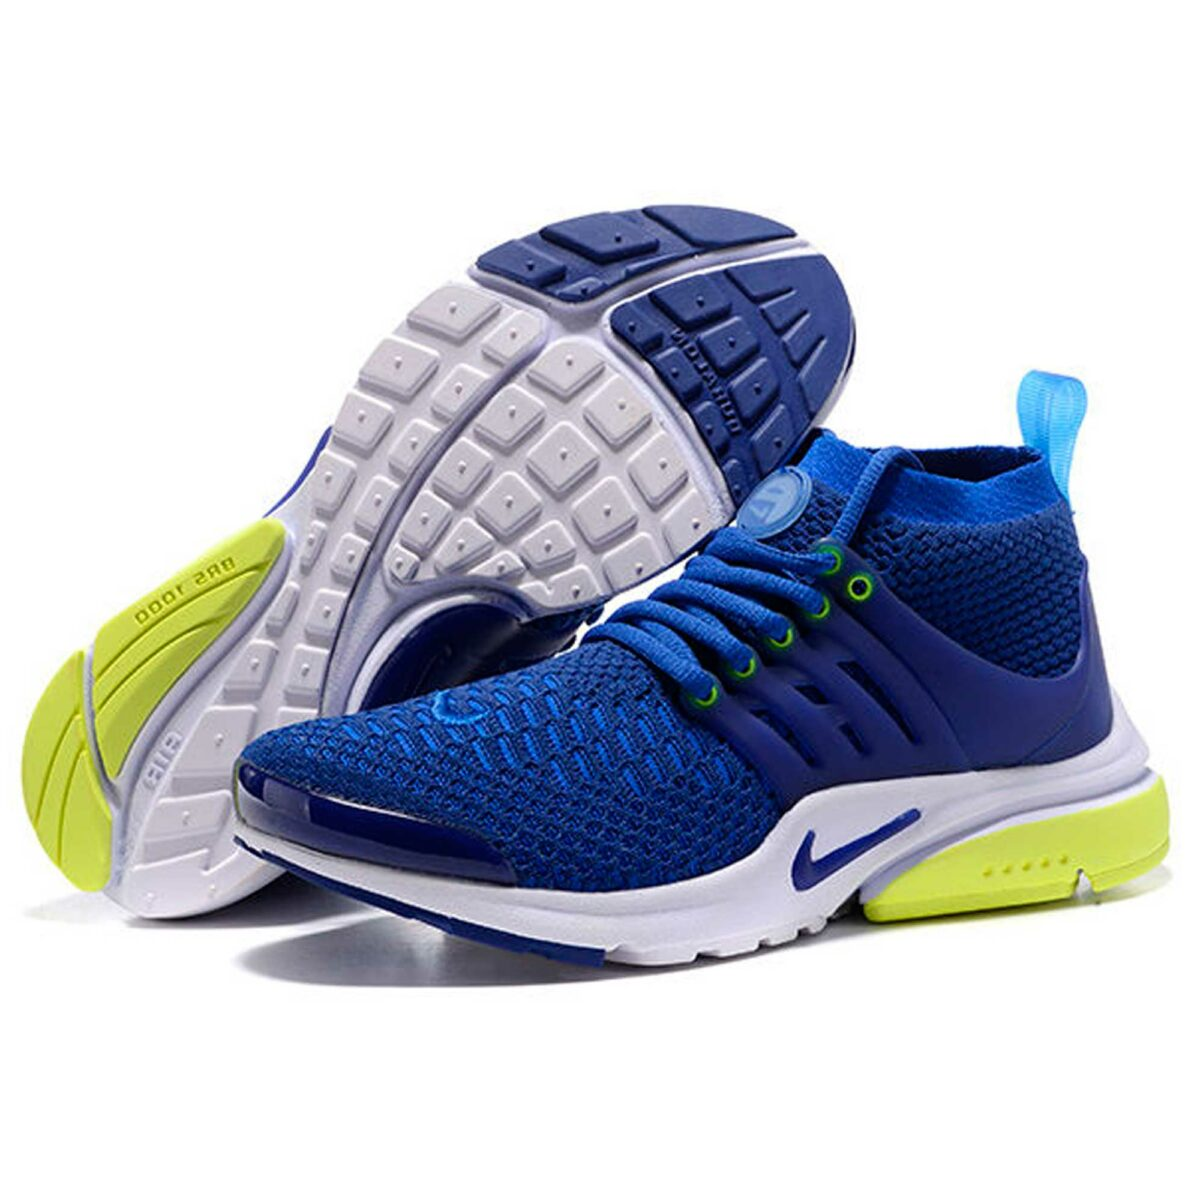 nike air presto blue white volt купить